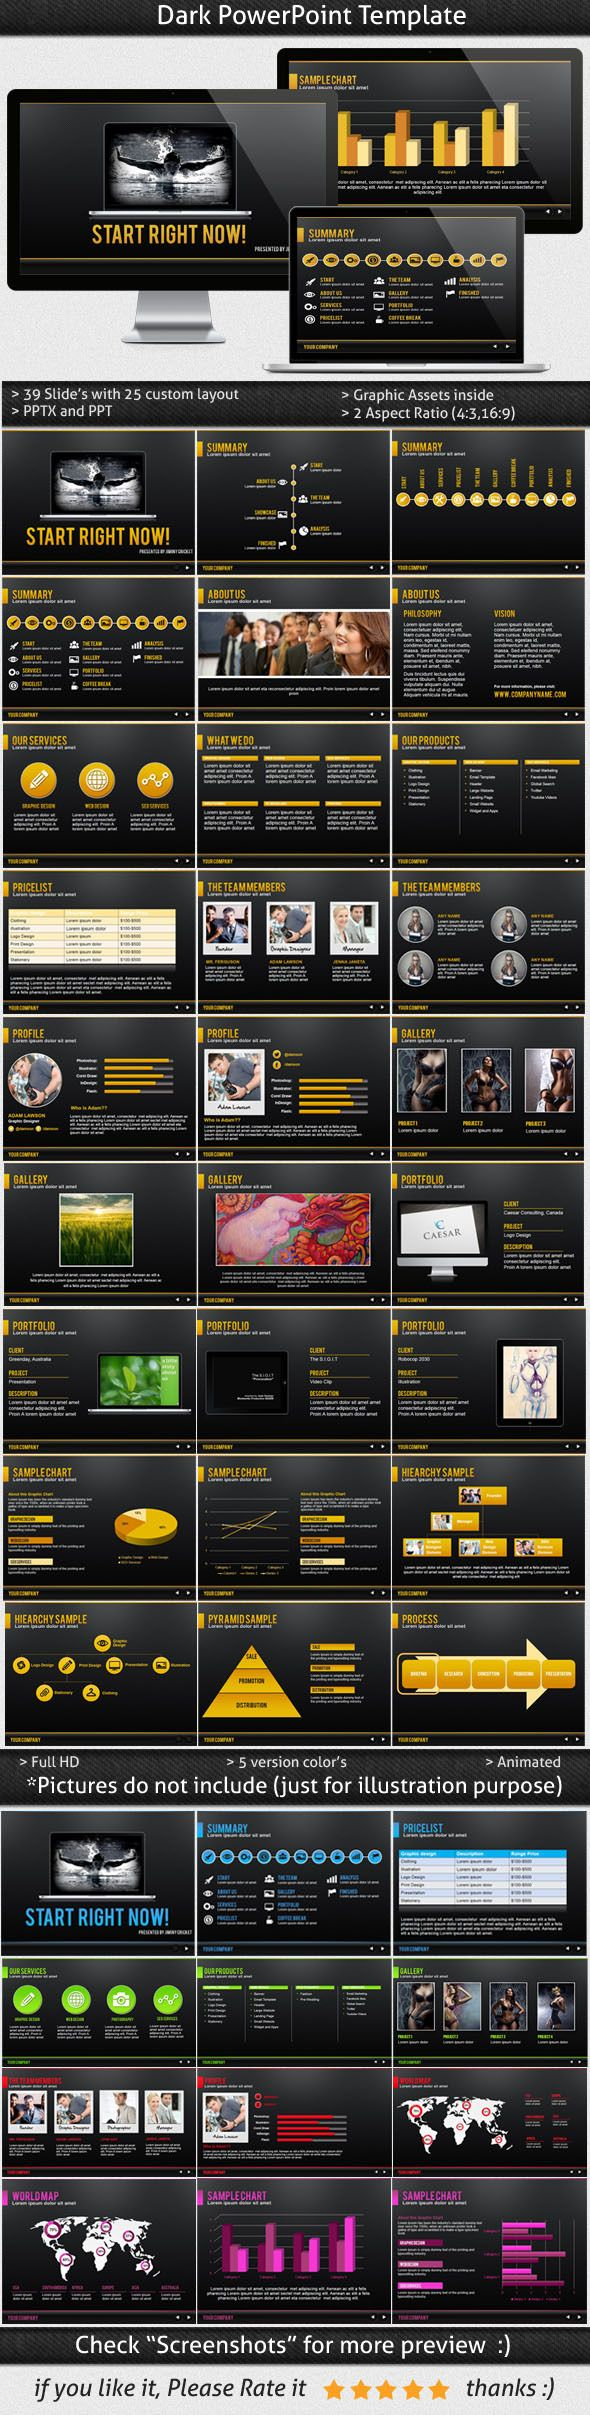 a good powerpoint template for presentation business needs or